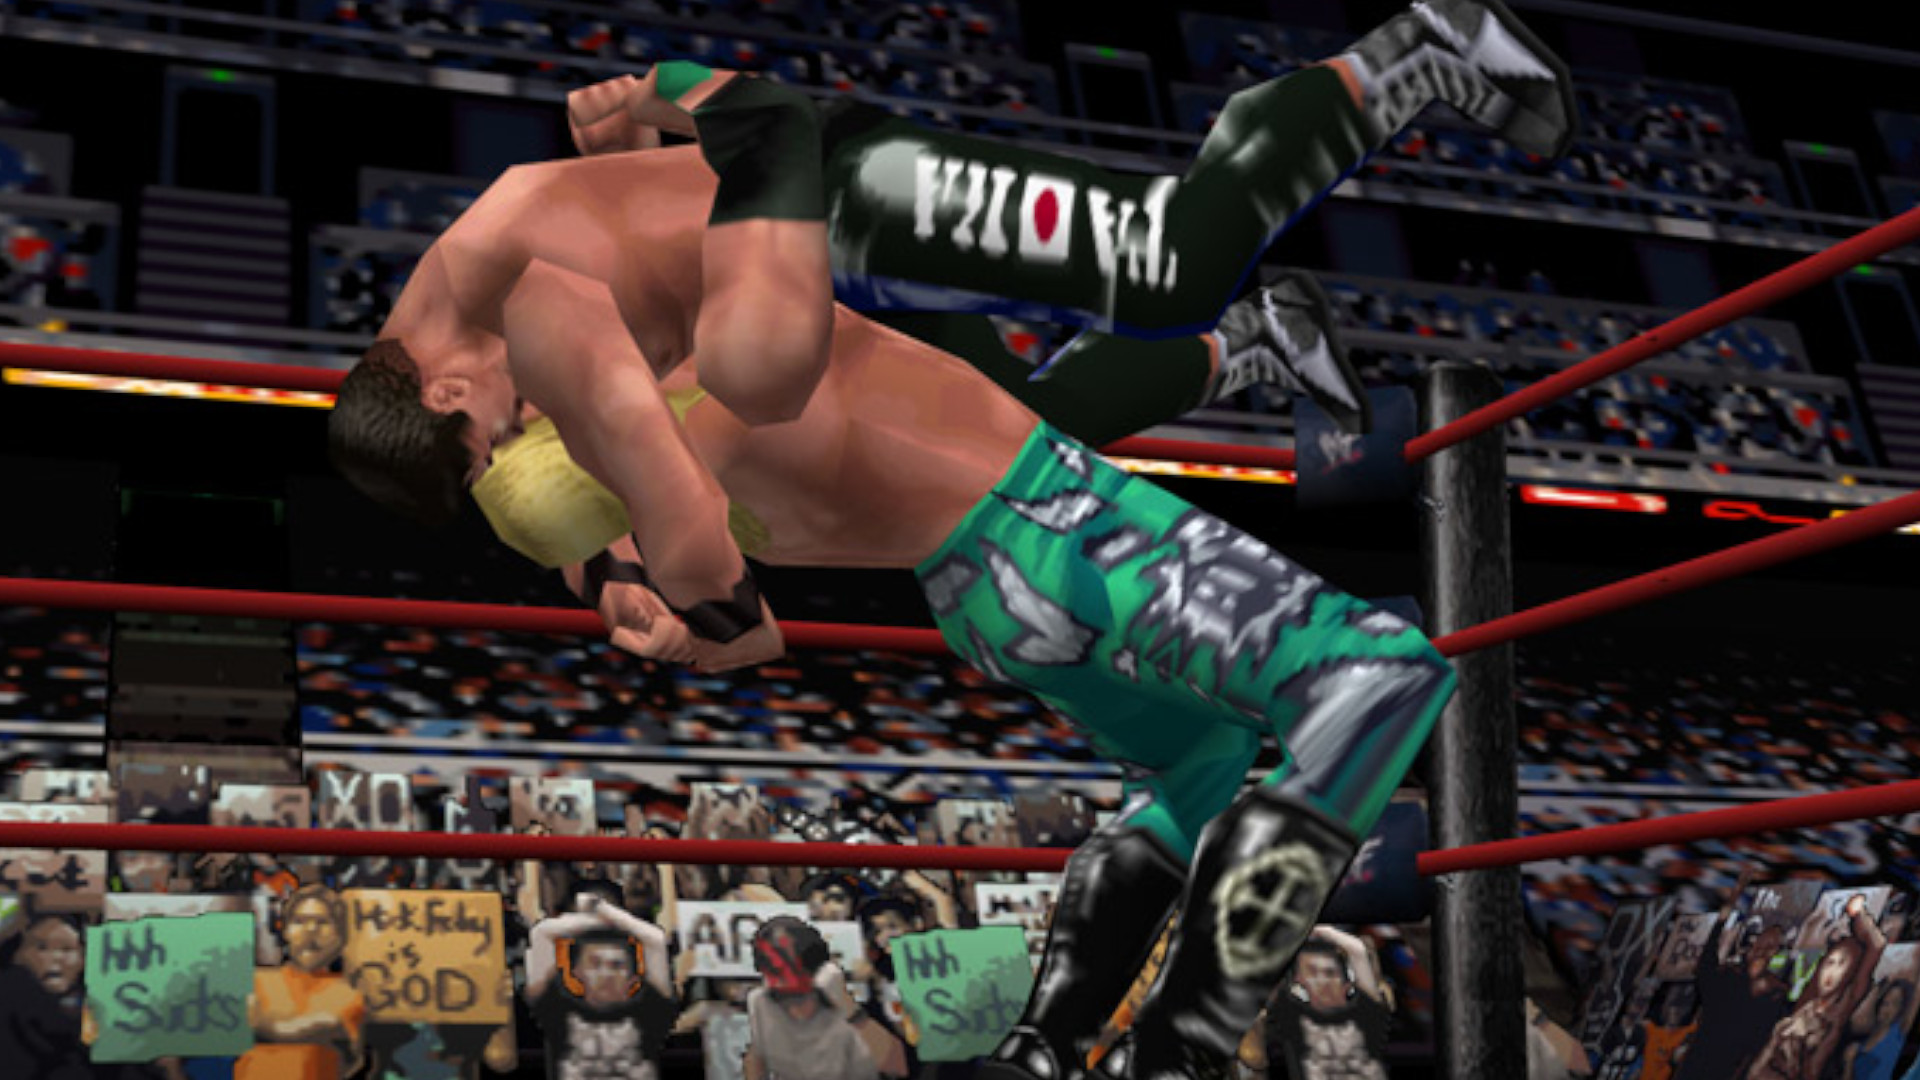 wwf no mercy wwe 2k22 - WWE 2k22 PPSSPP ISO file and data